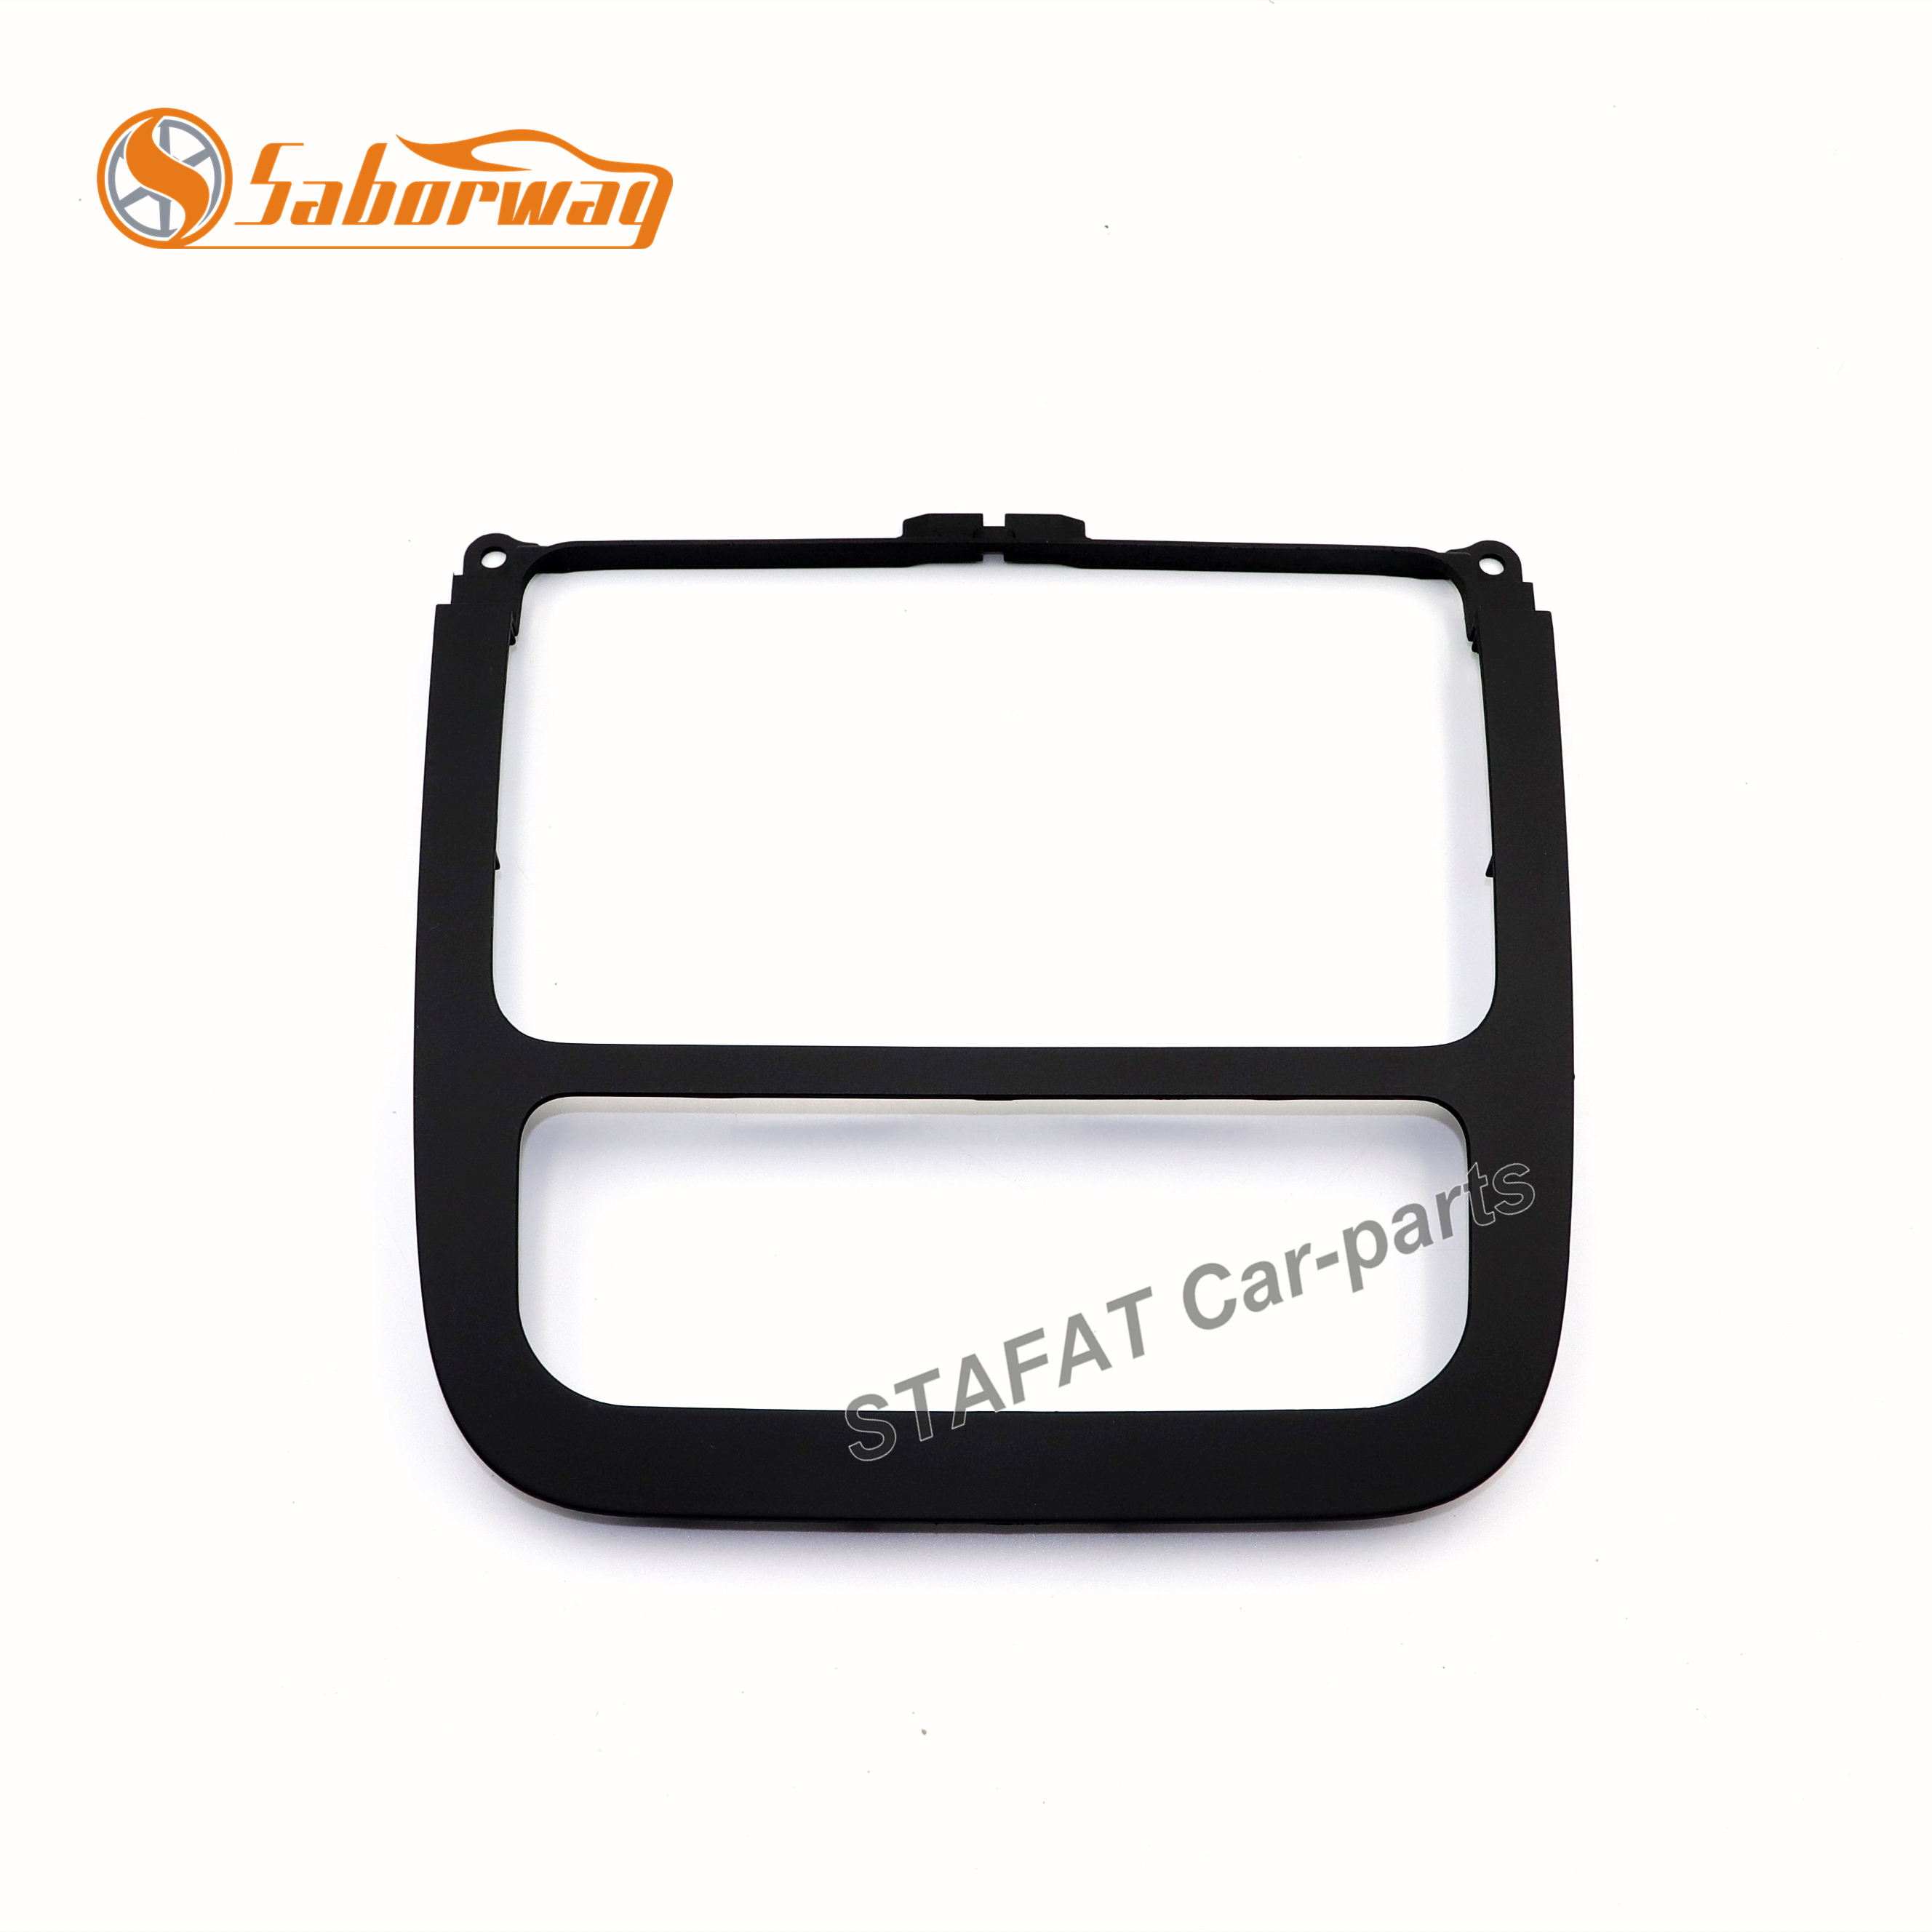 Saborway Black Automatic Air Conditioning Panel CD Panel Surround Radio Trim For Jetta Golf 5 MK5 MK6 Year 2011 1KD 858 069 image